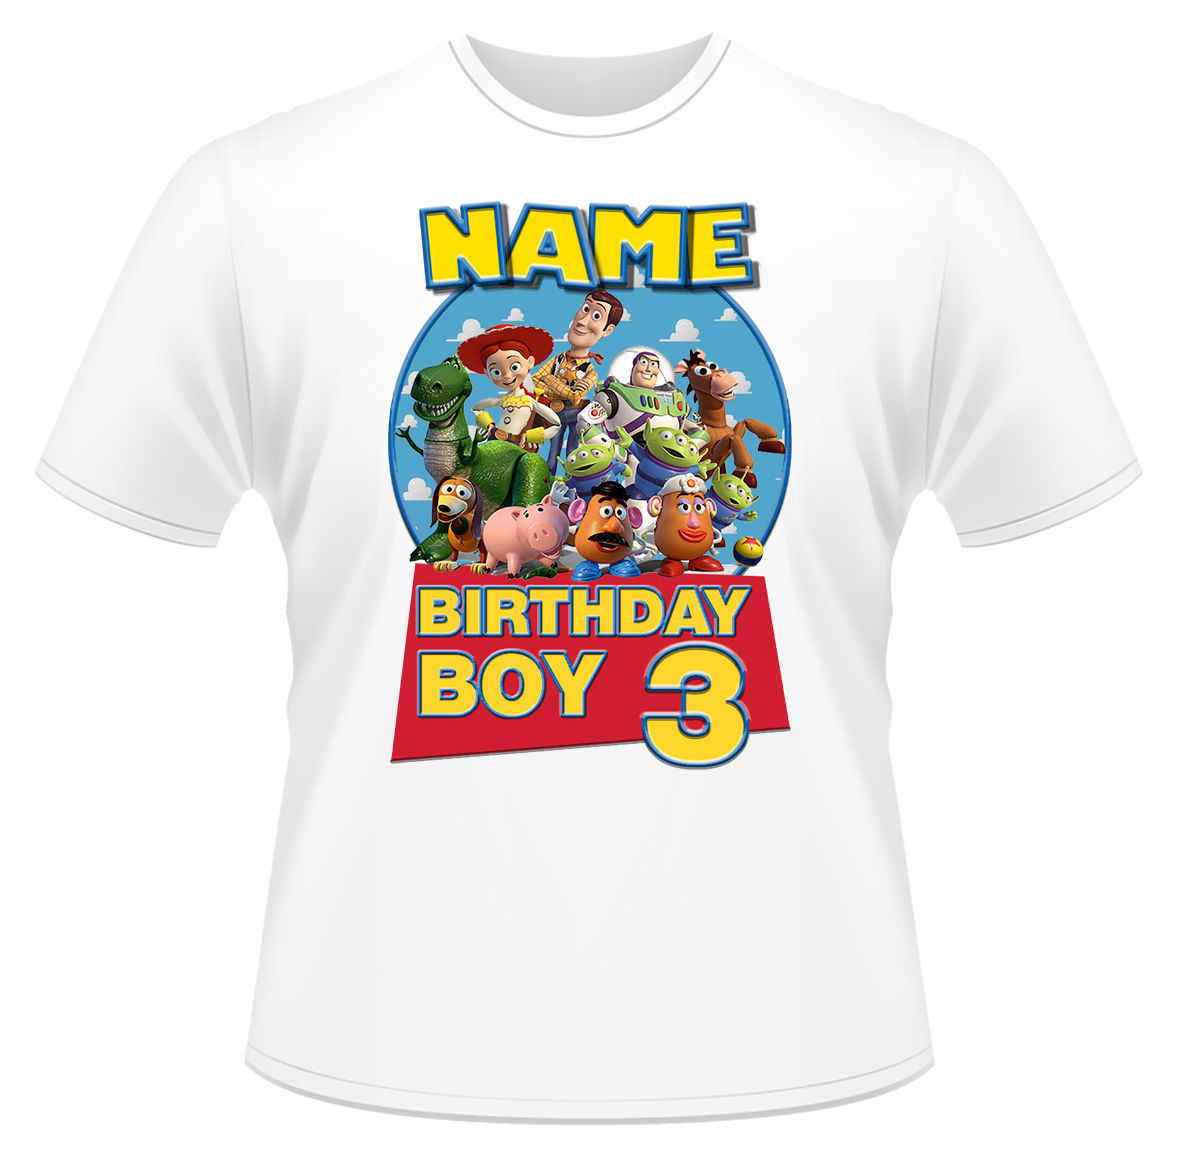 d9f91afb ... Toy Story Birthday Personalised Boys Girls T-Shirt Age 3 Ideal Gift/ Present New ...